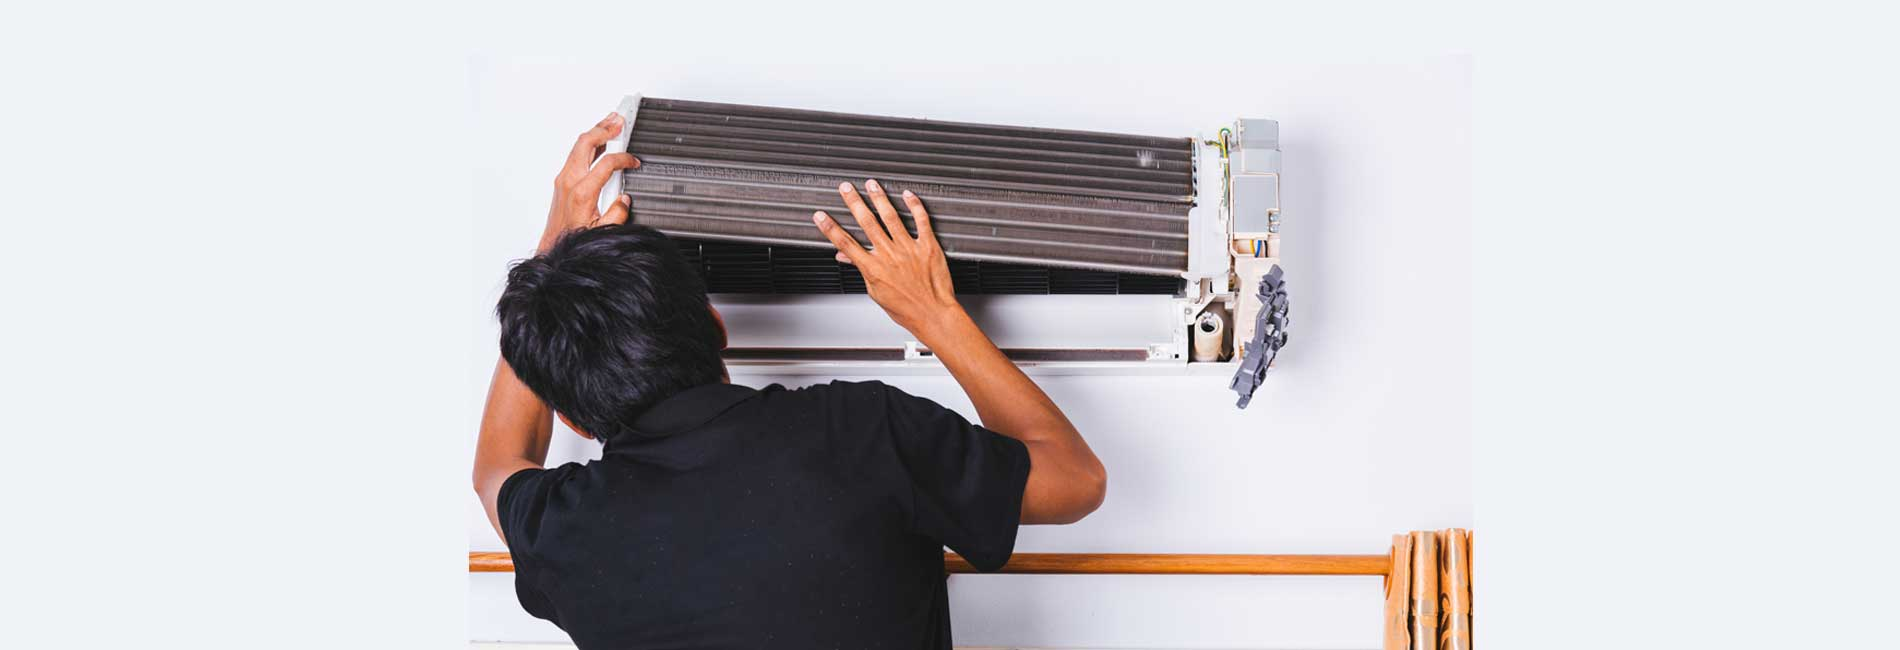 AC Uninstallation and Installation in Kattankulathur